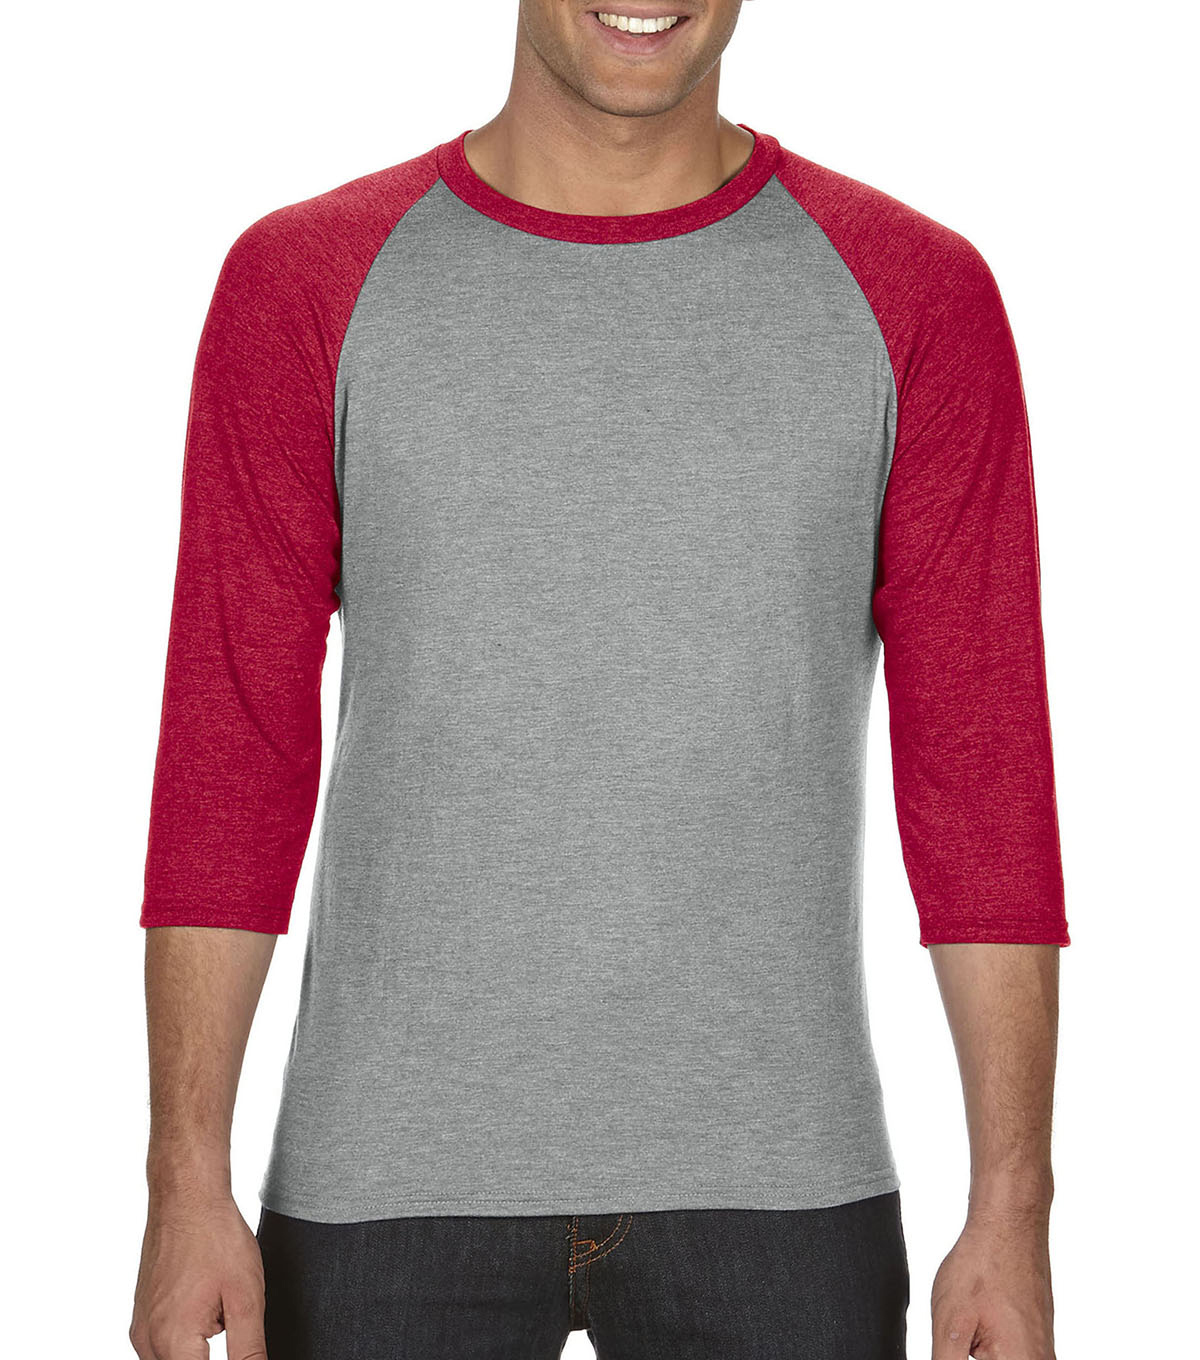 Anvil Extra Large Adult Raglan Shirt